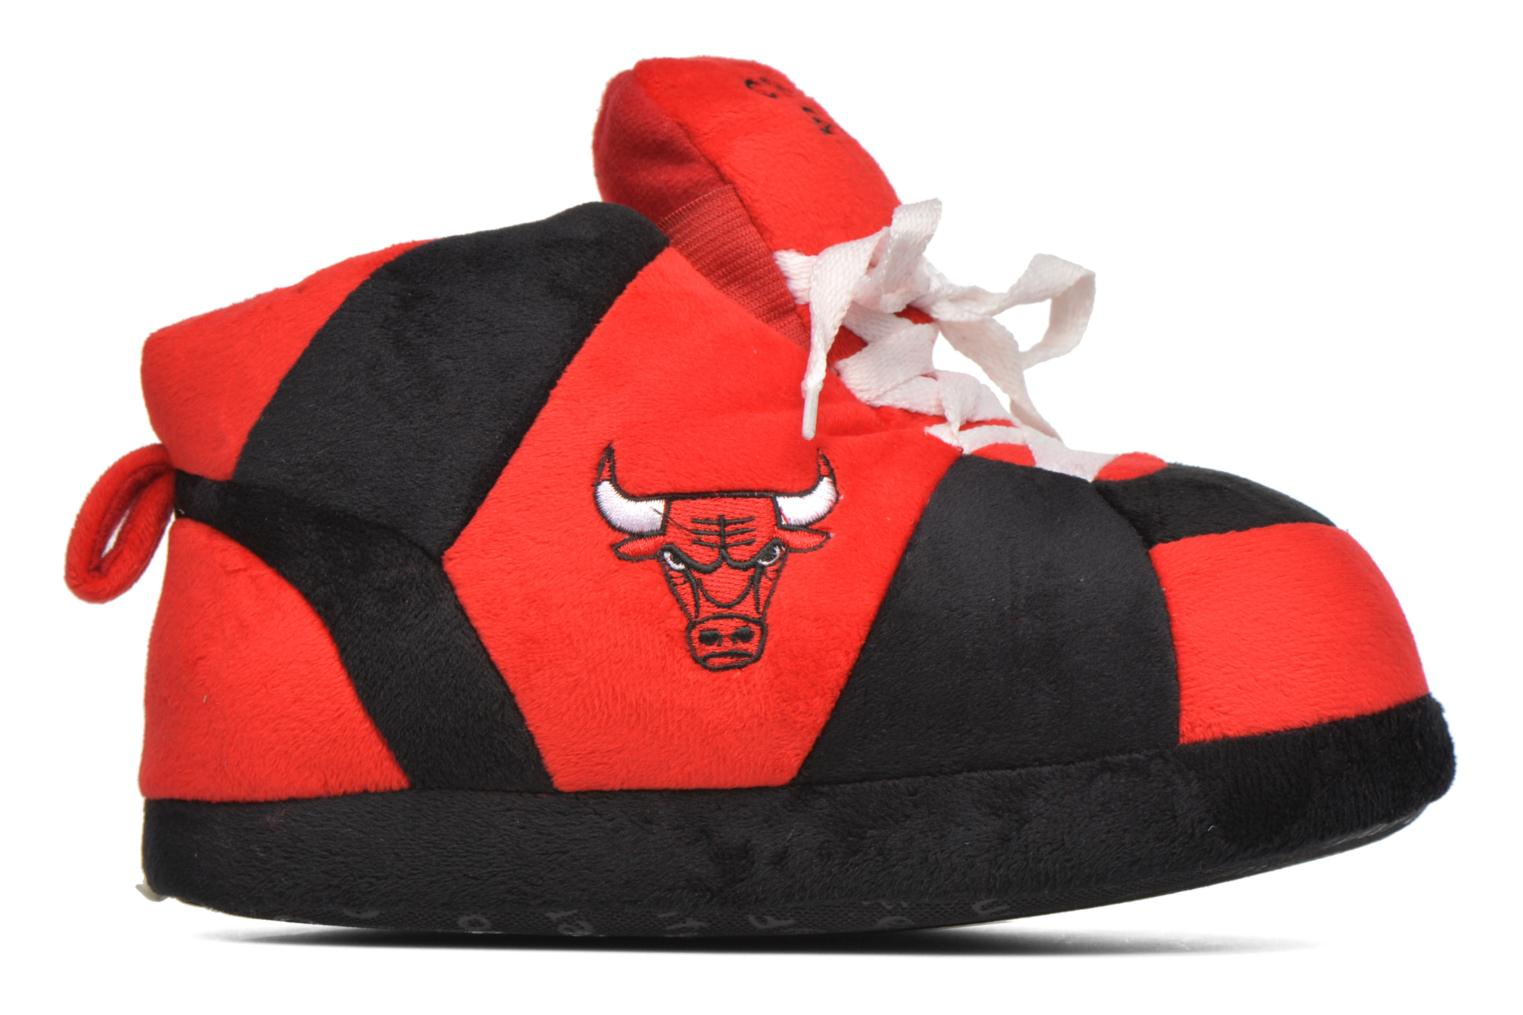 Chaussons Sleeperz Chicago Bulls K Rouge vue derrière